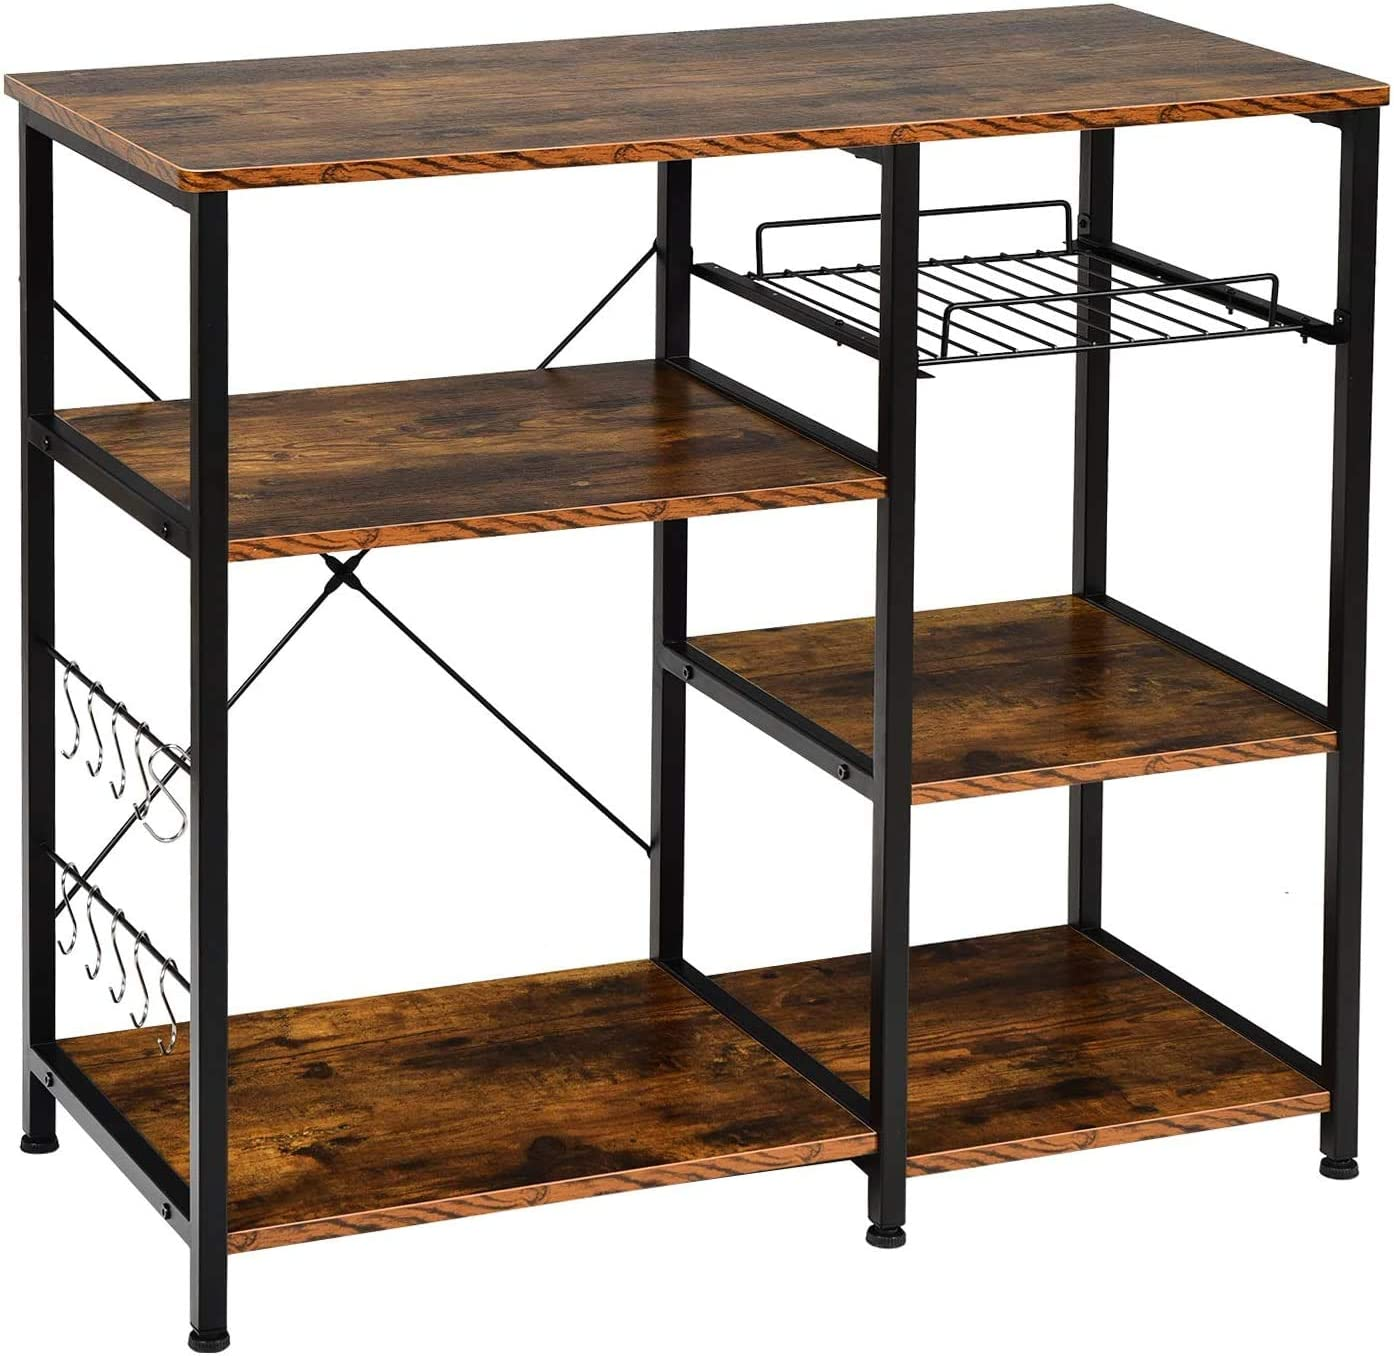 Vintage Kitchen Baker's Rack 35.5 Inches Microwave Oven Stand Workstation Shelf with 10 Hooks, 3+3 Tier Utility Storage for Spice Rack